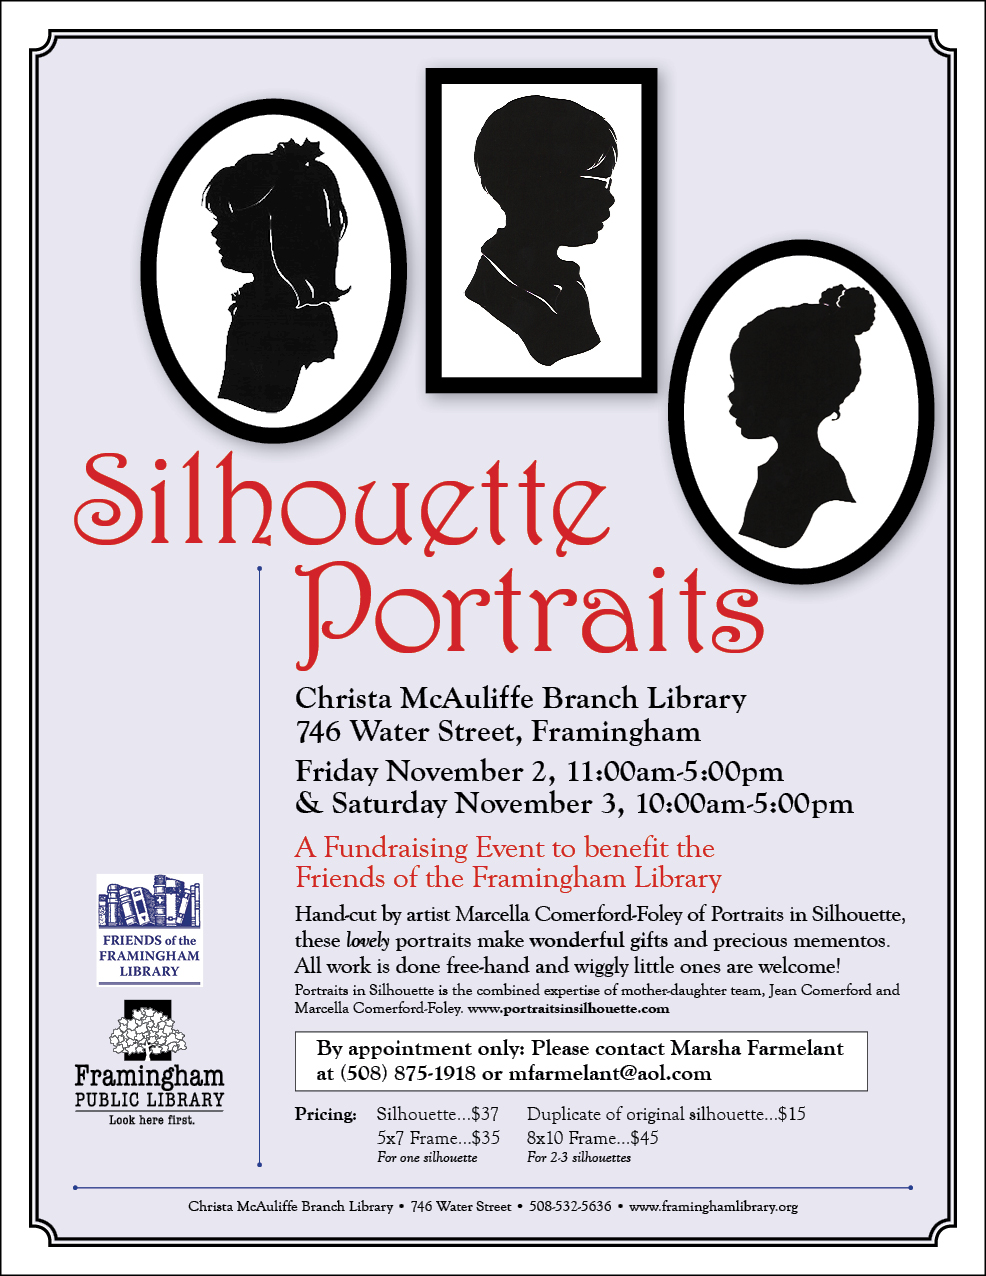 Silhouette Portraits: A Fundraising Event to Benefit the Friends of the Framingham Library thumbnail Photo